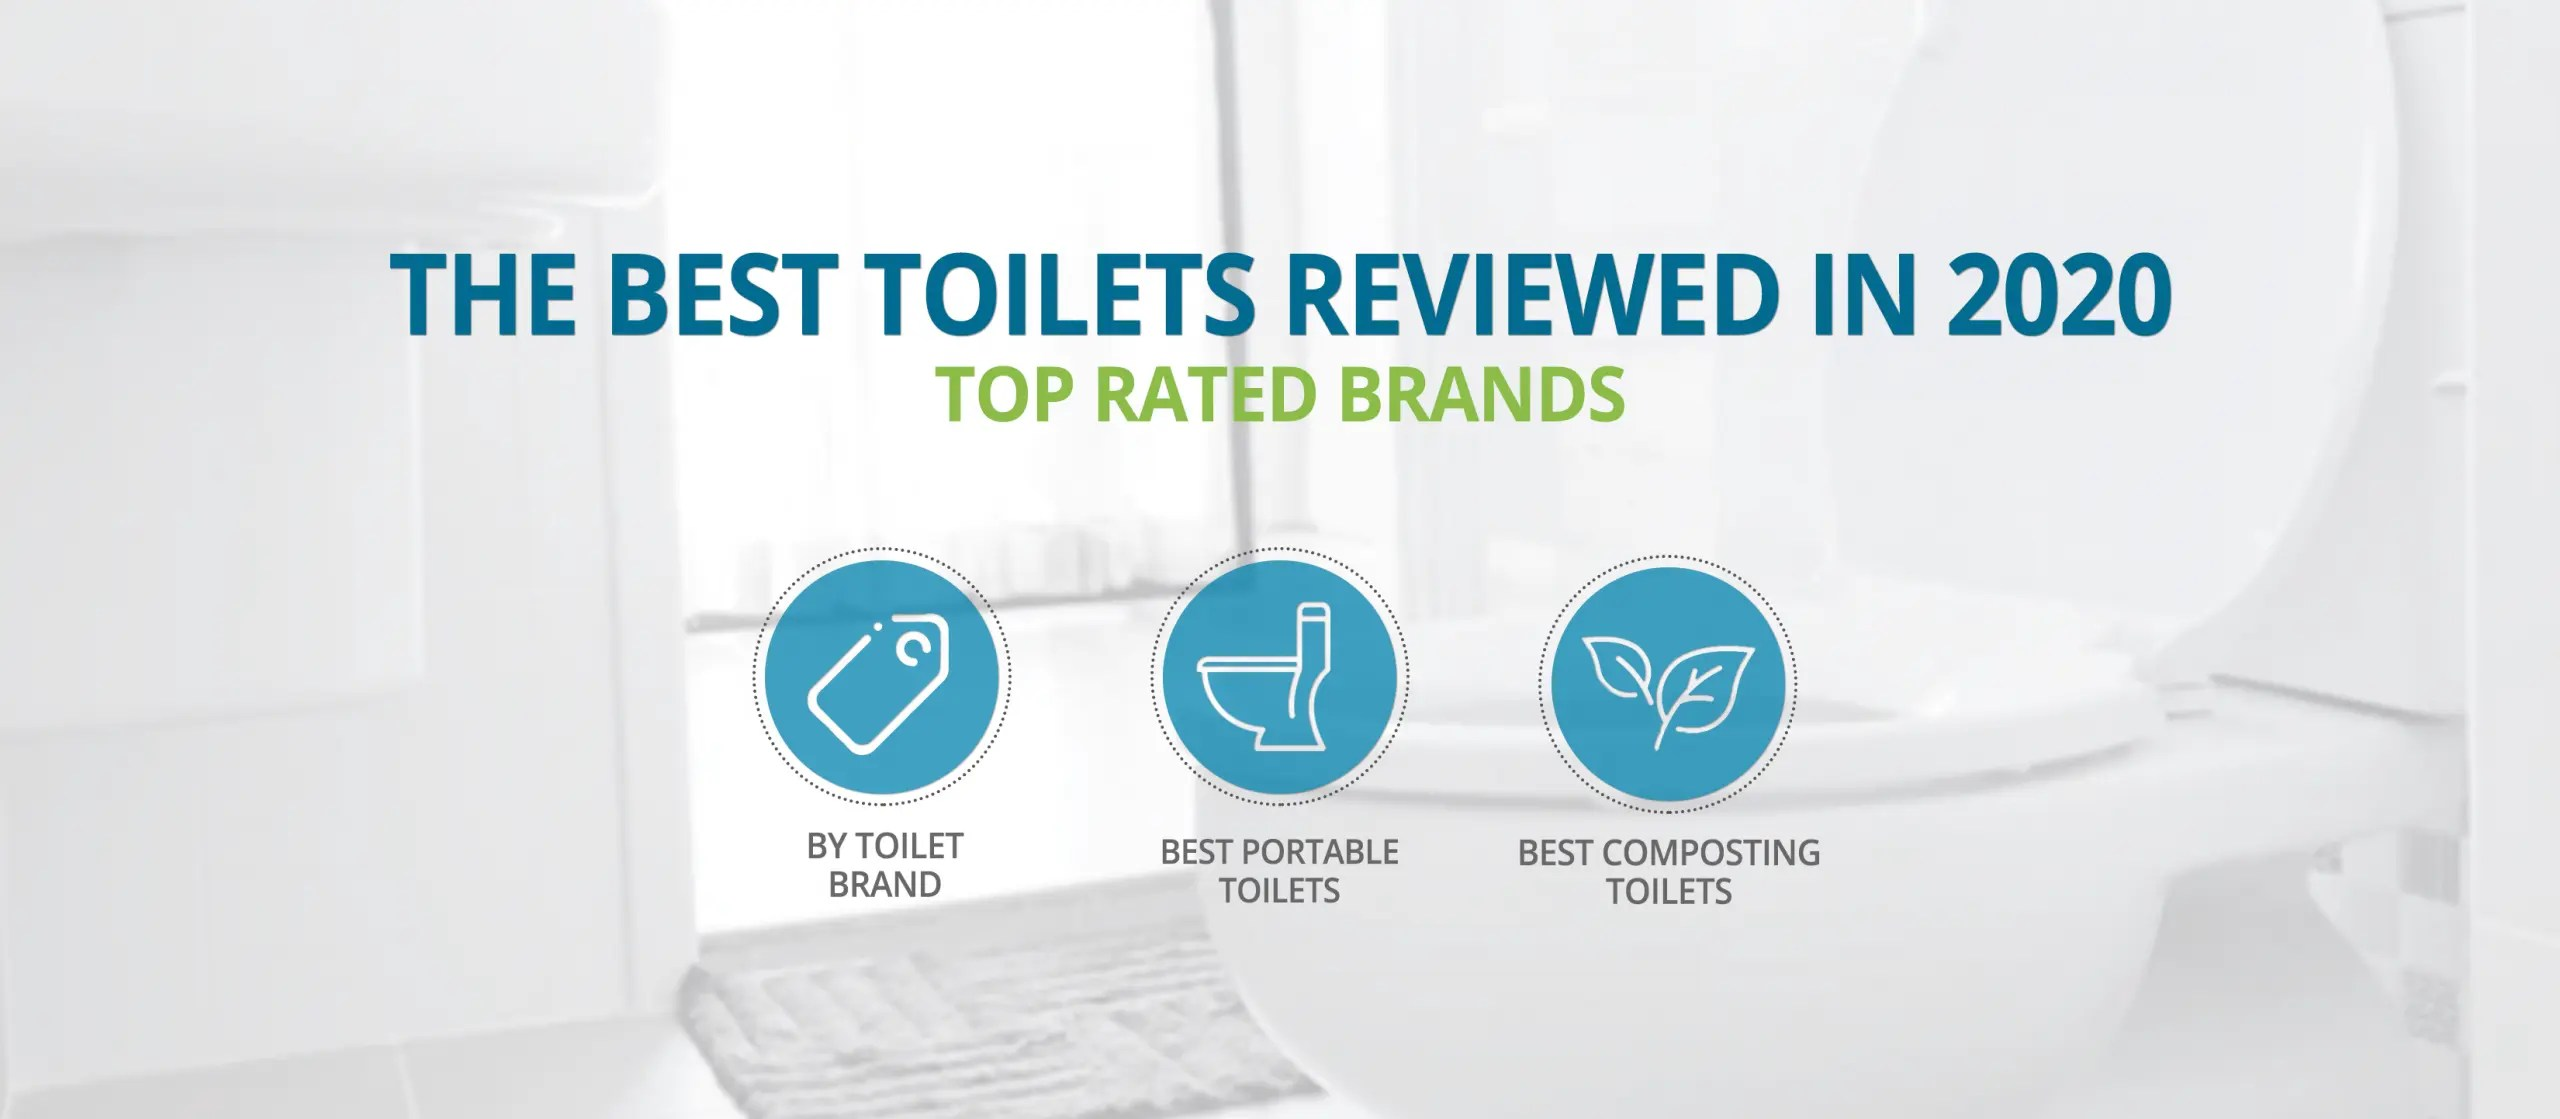 Top Rated Toilets by Toiletable.com